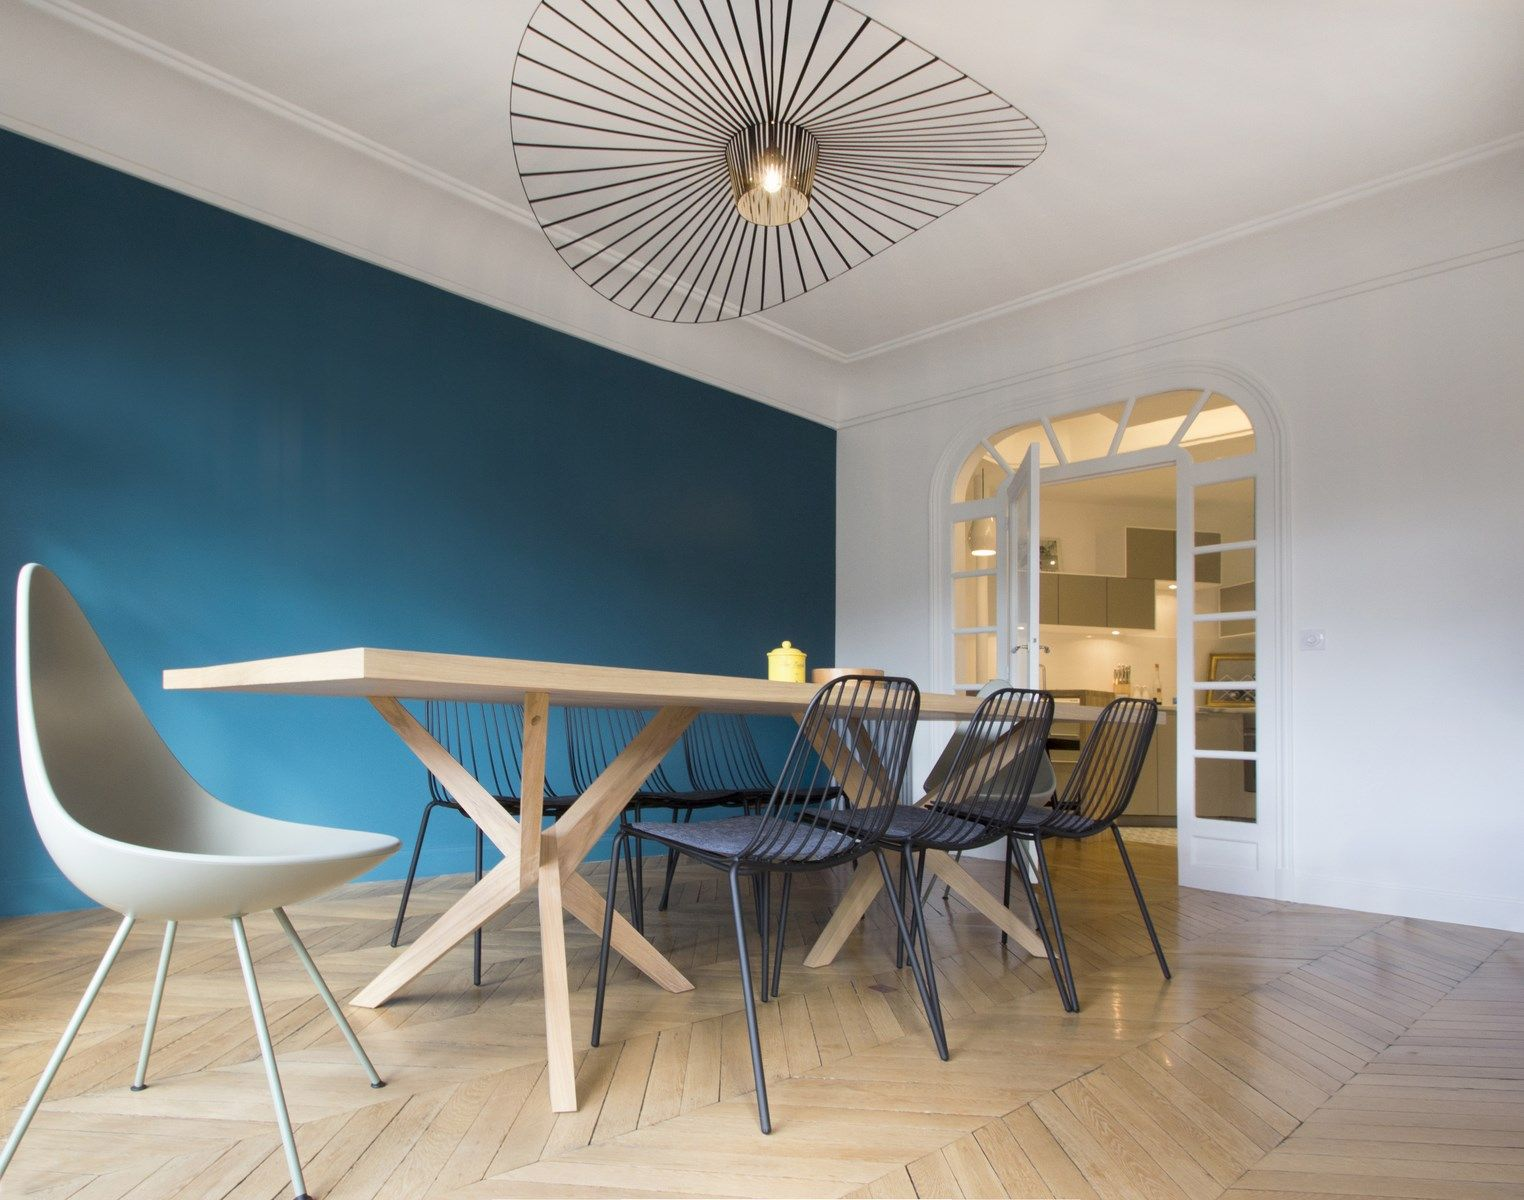 Drop chair table jane rochebobois suspension vertigo petite friture mur bleu r novation d - Suspension style vertigo ...